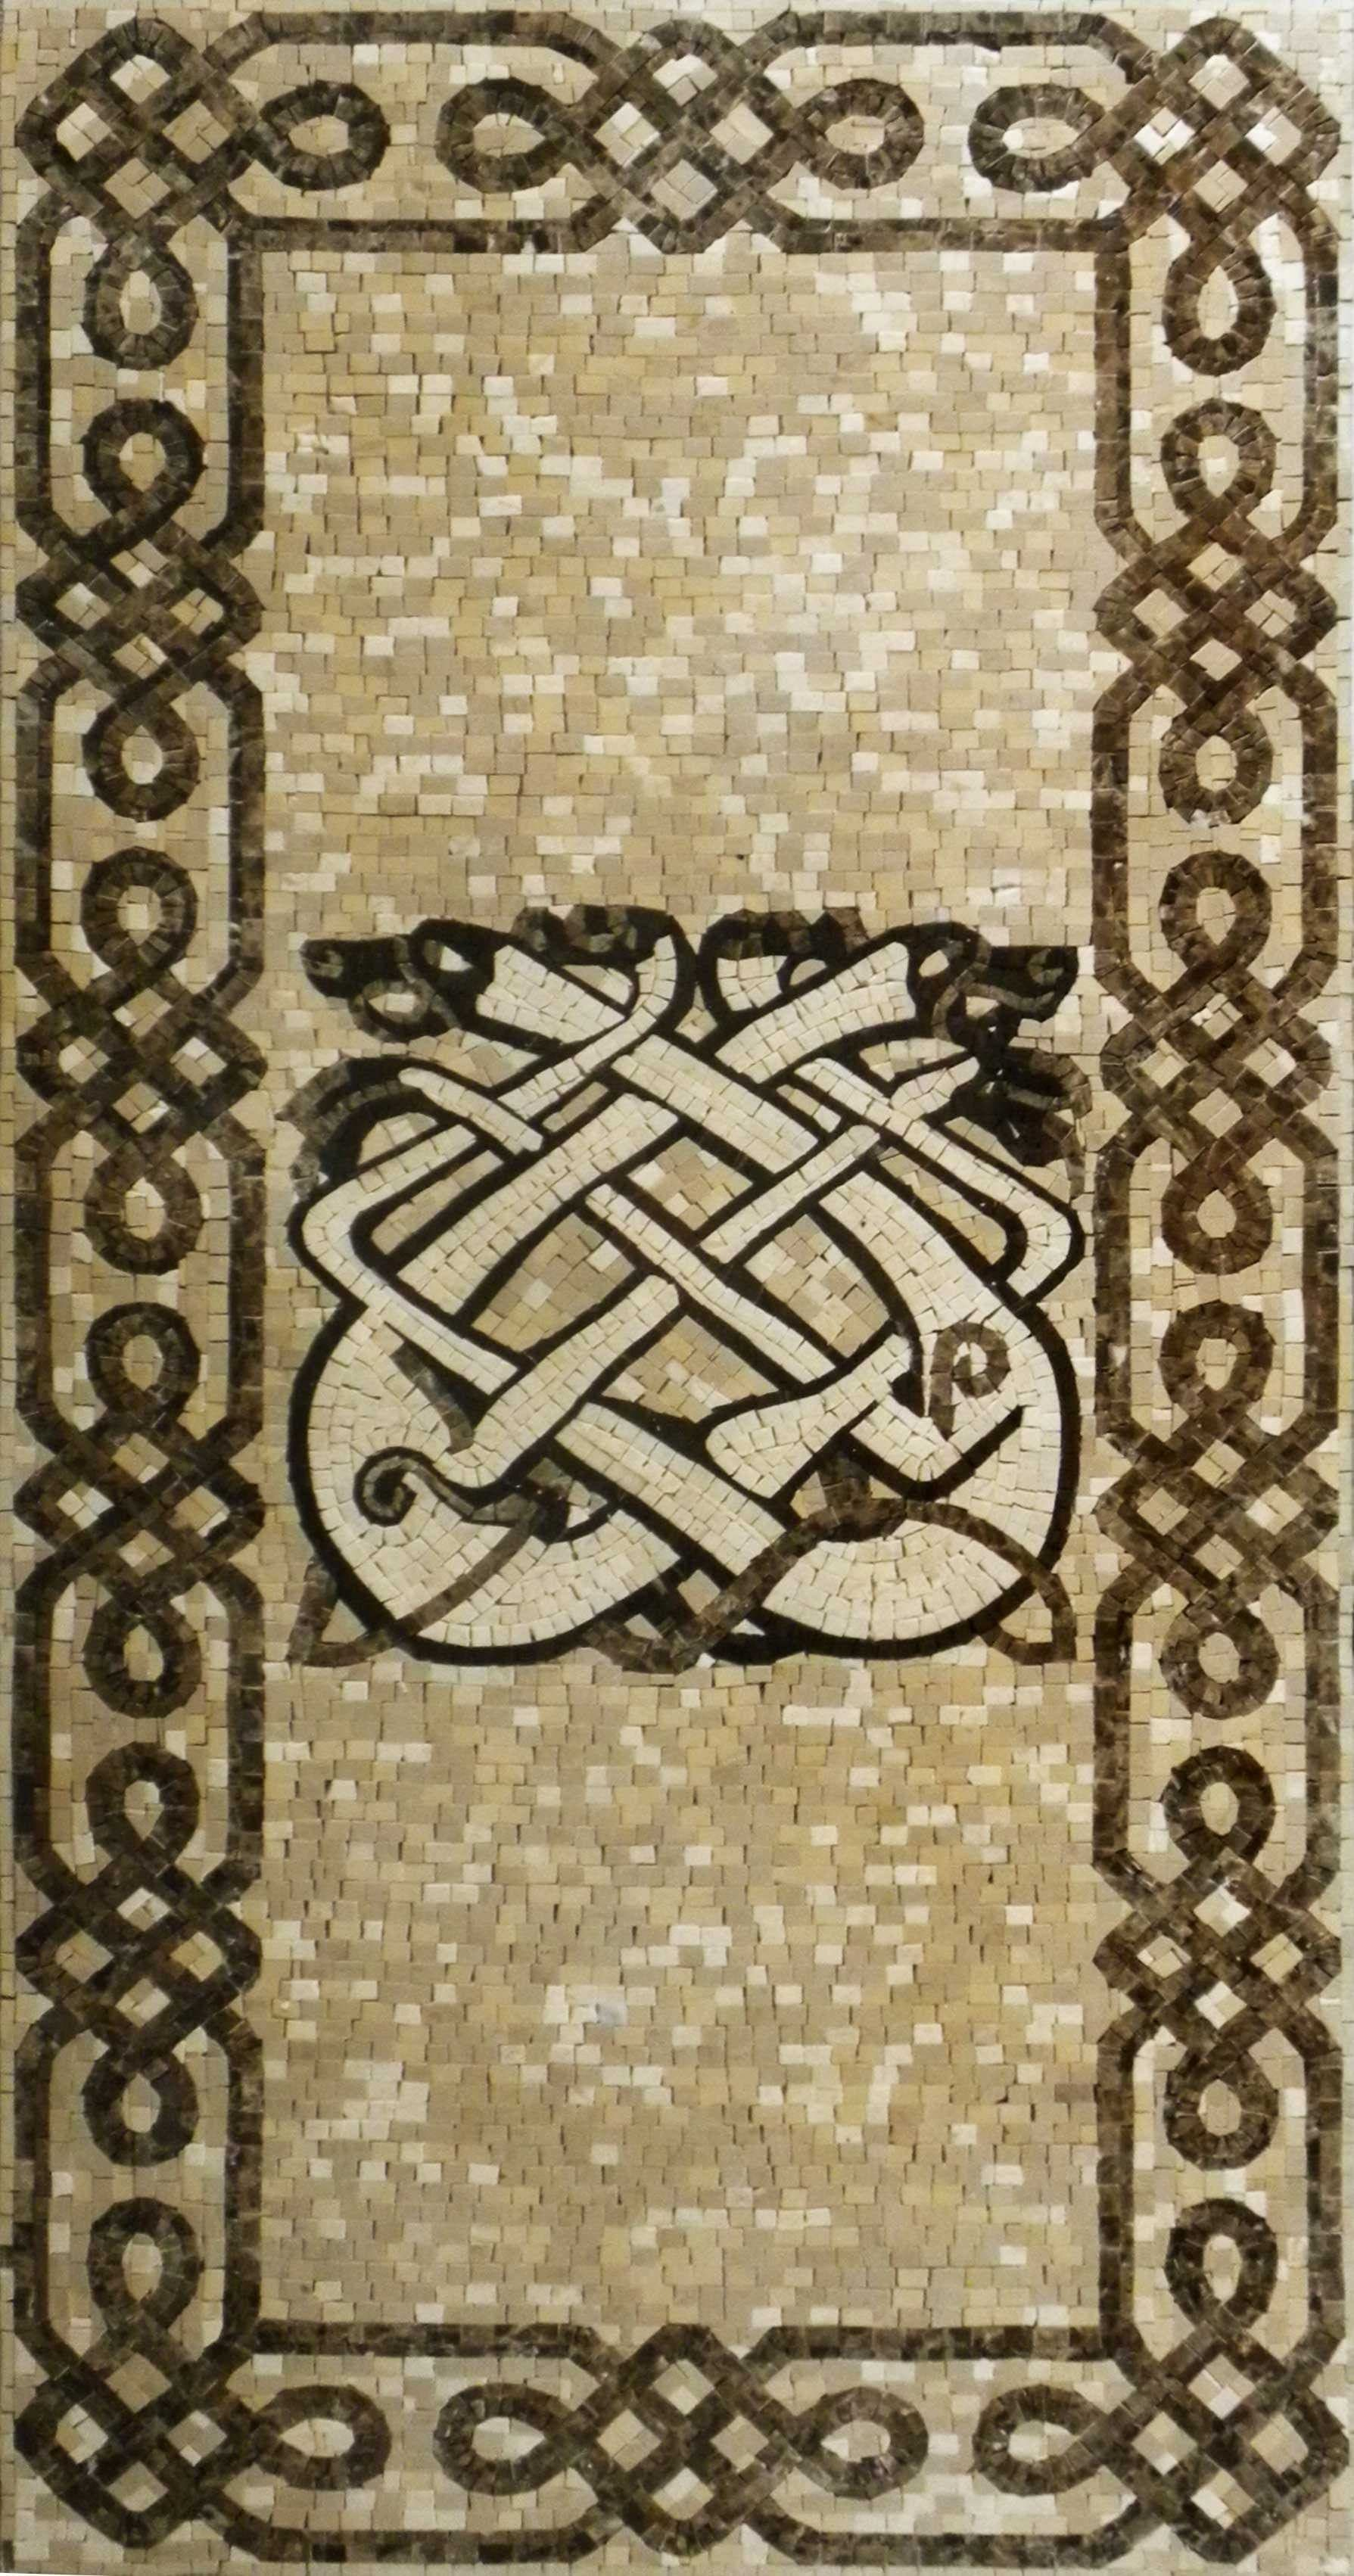 Marble Mosaic Art Celtic Dogs Pic